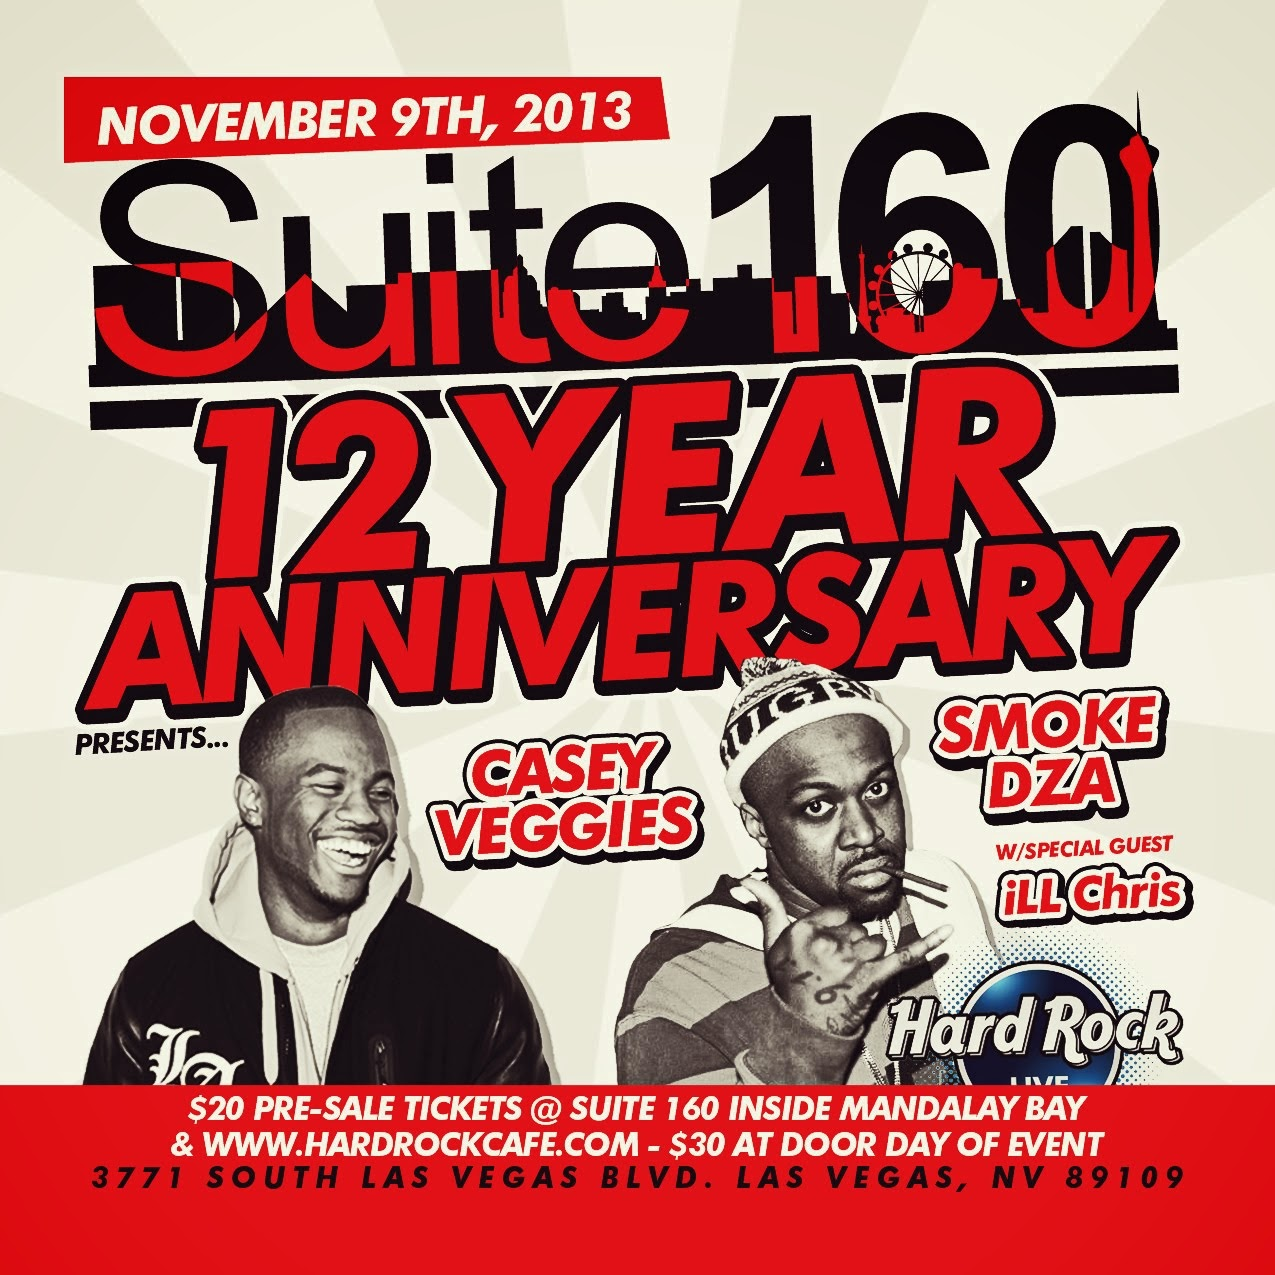 Casey Veggies & Smoke DZA | Nov 9th @ Hard Rock Cafe Strip ONLY $20 Online